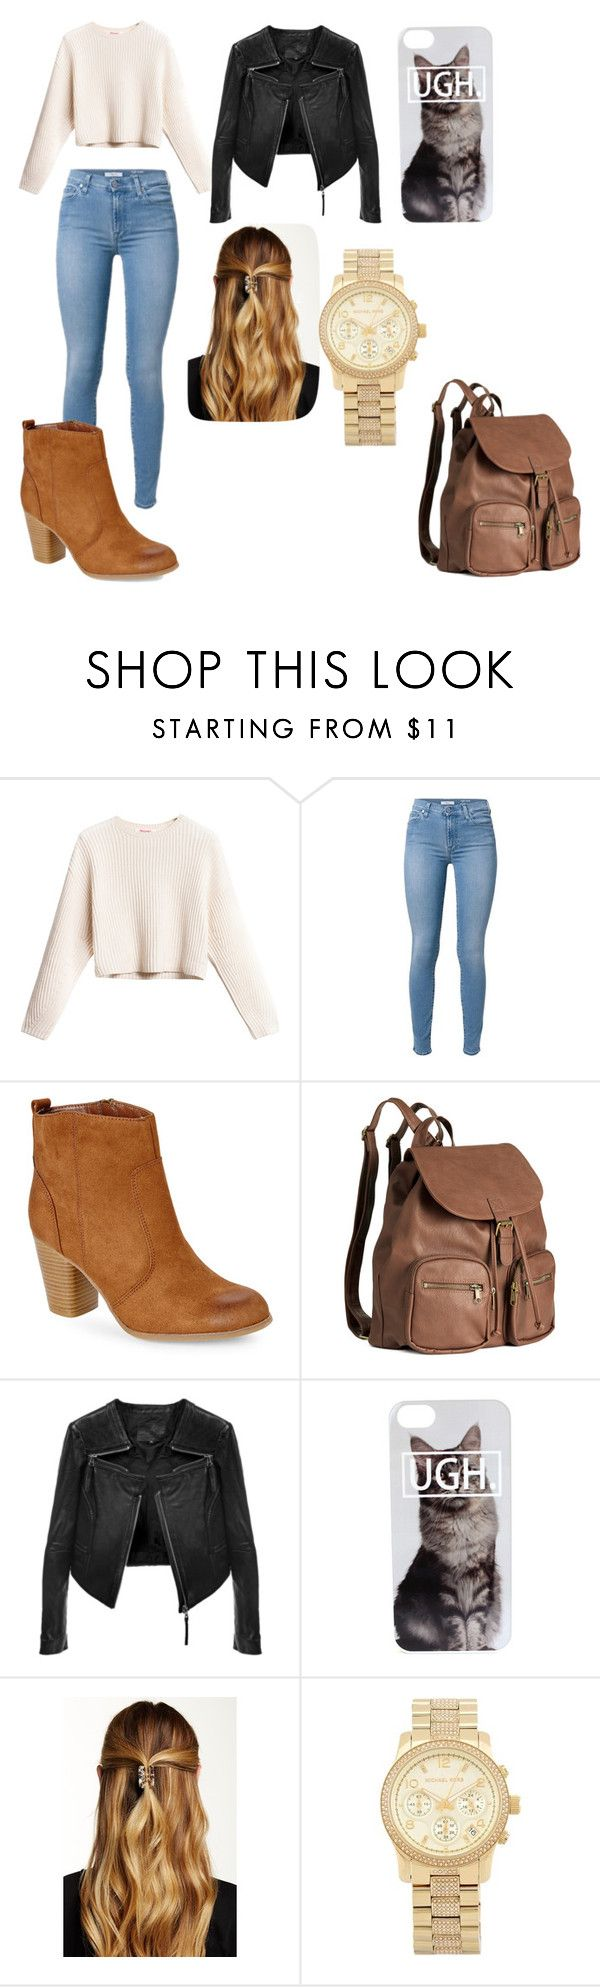 """casual day"" by yumenaisenpai on Polyvore featuring Madden Girl, H&M, Linea Pelle, Natasha Accessories and Michael Kors"